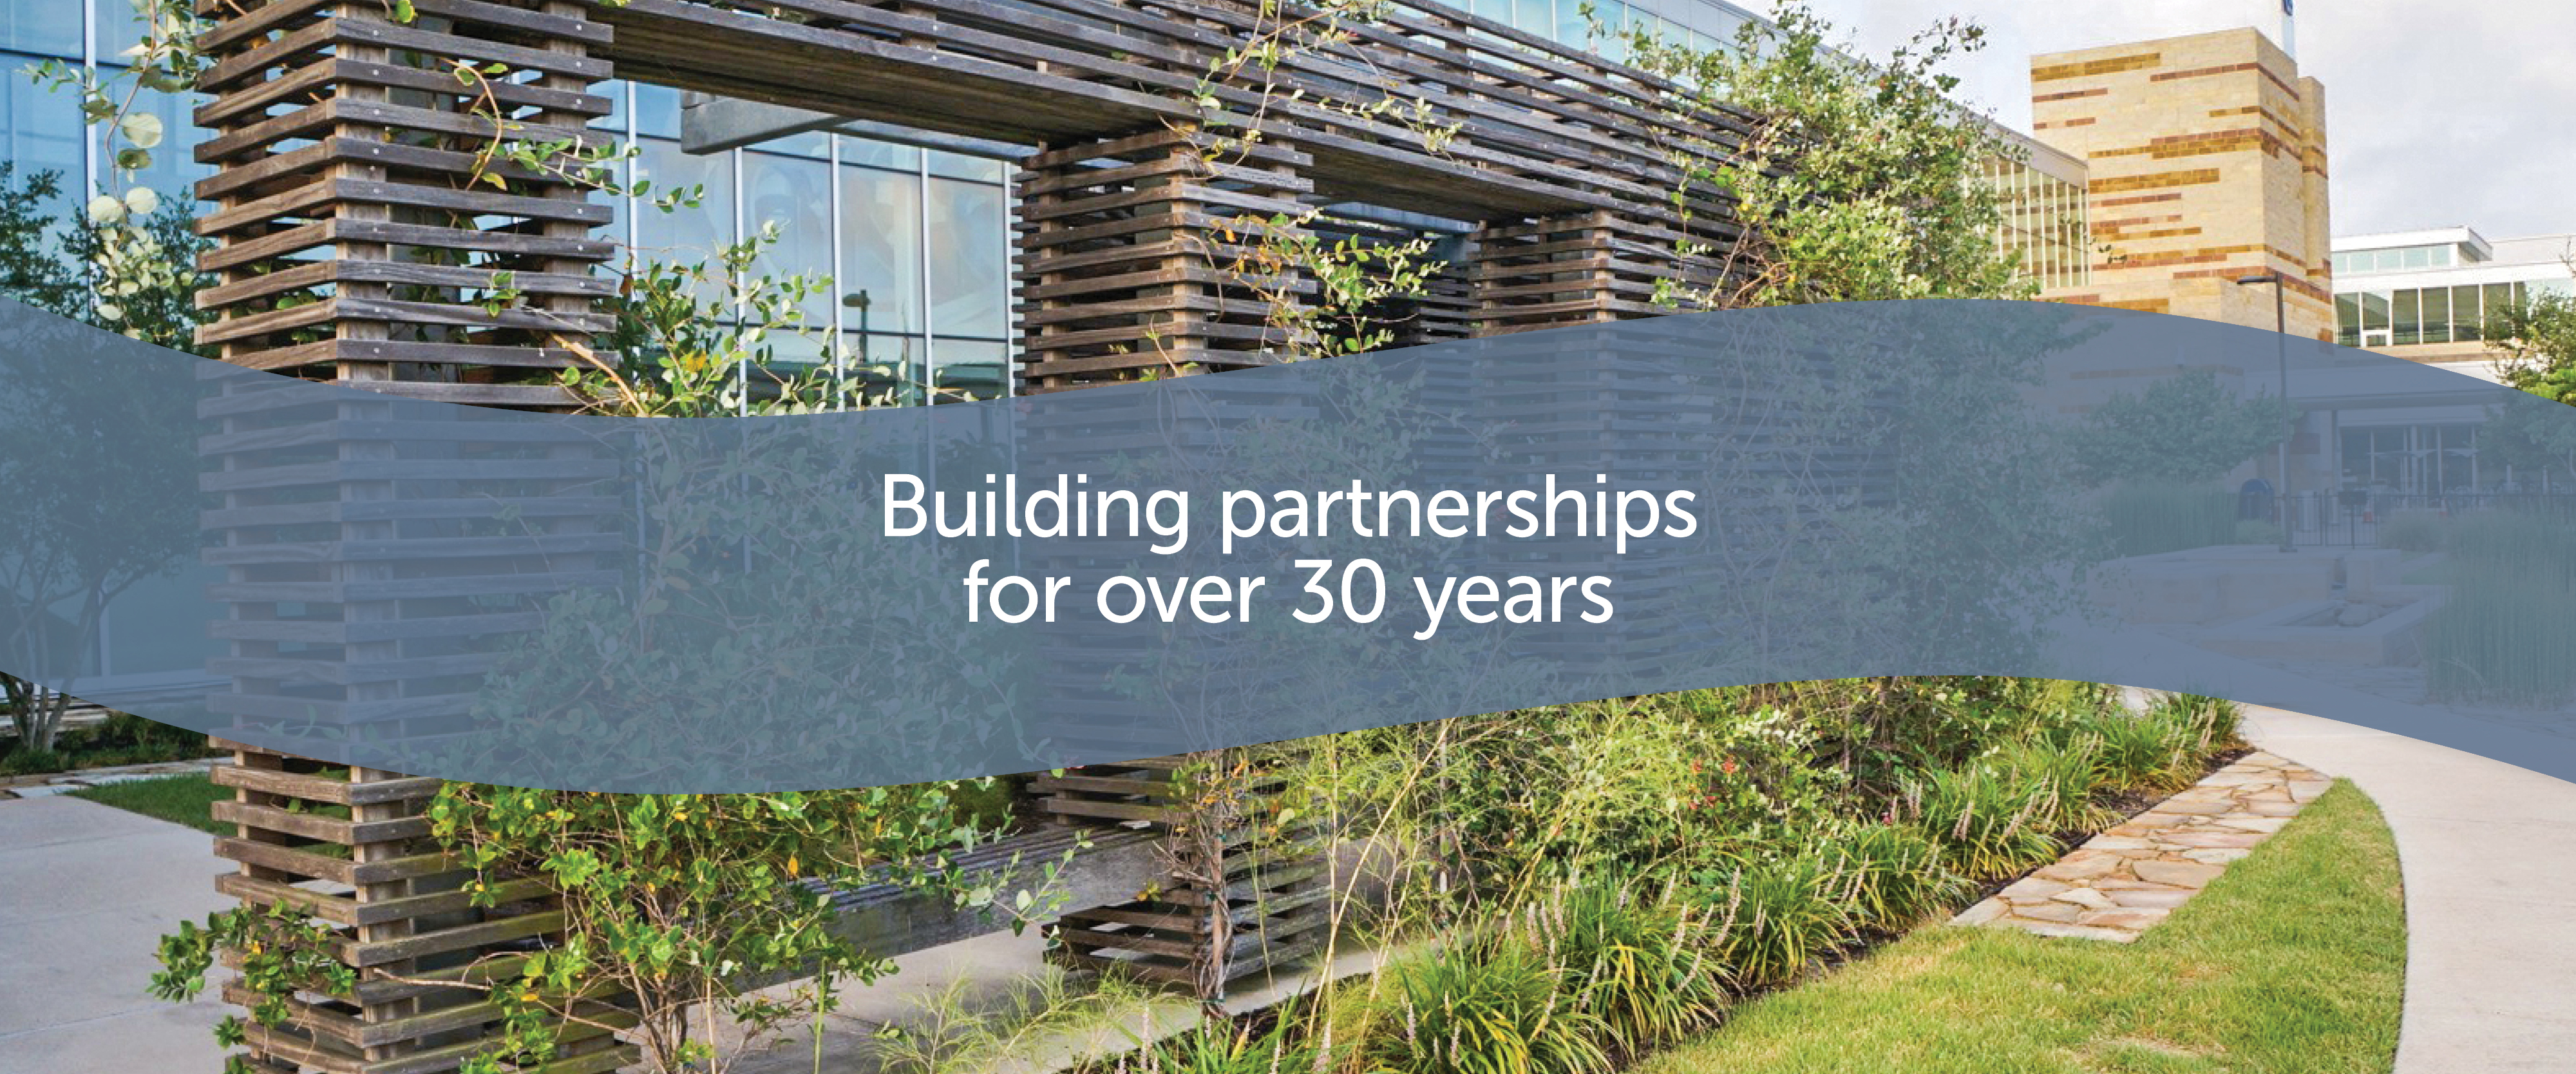 Choate USA - Building Partnerships for Over 30 Years